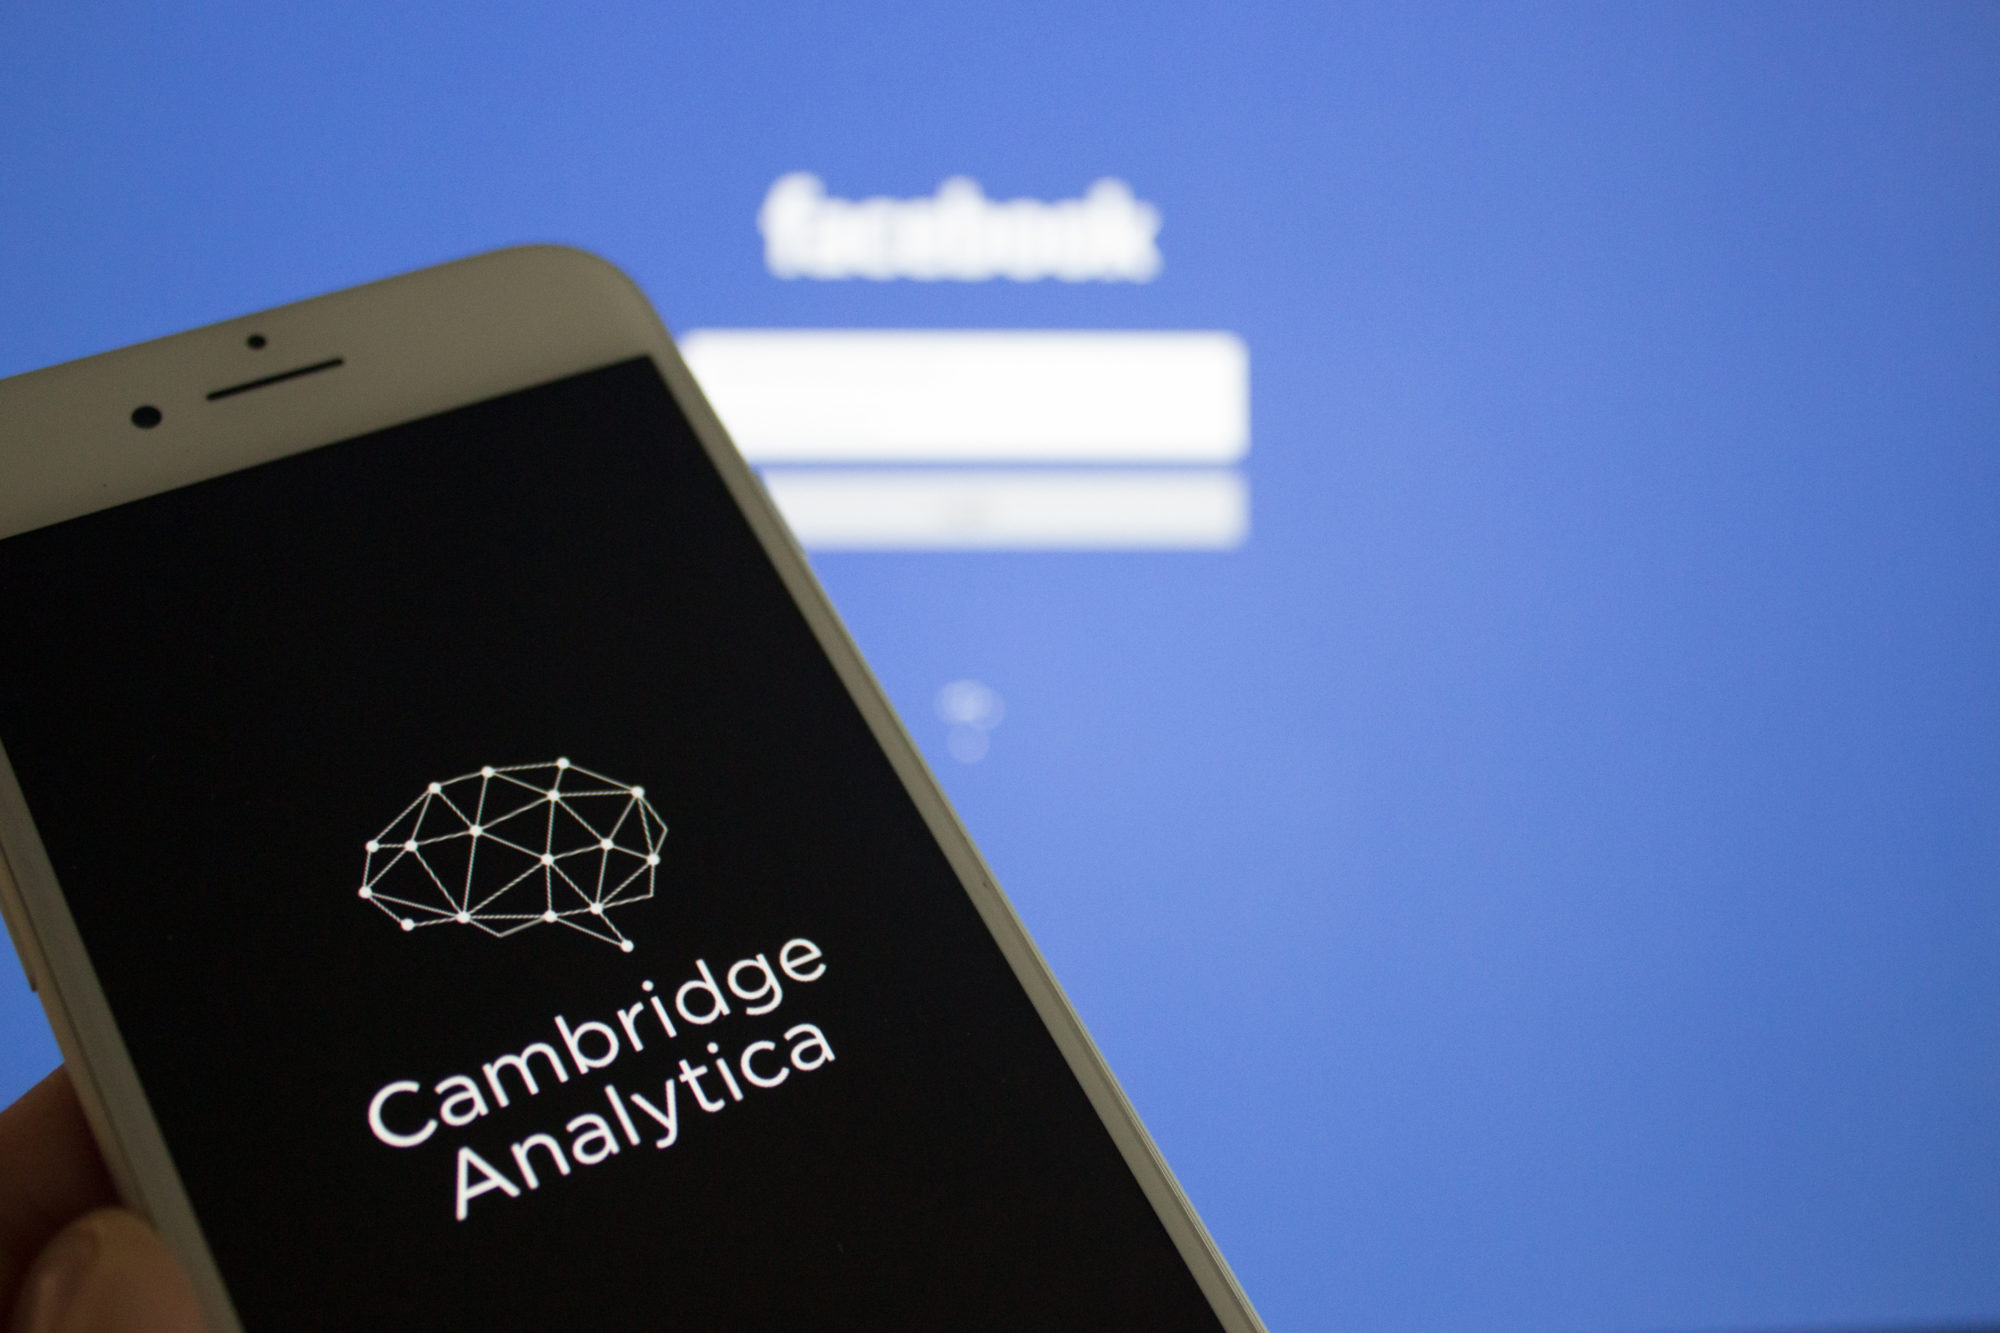 Le scandale Cambridge Analytica a largement déstabilisé le géant Facebook.